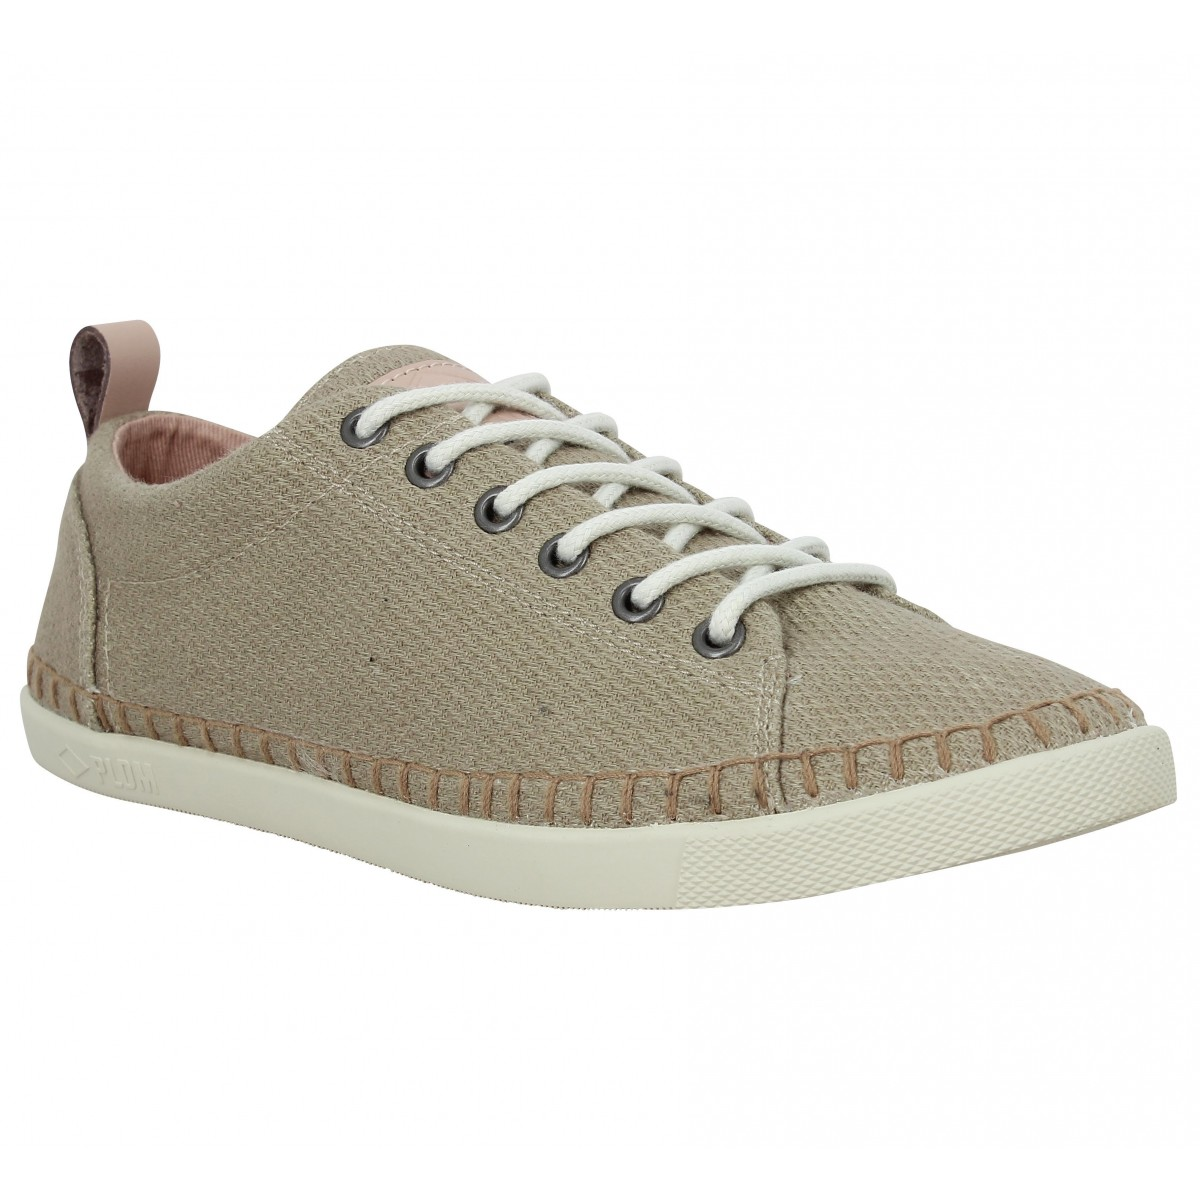 Baskets PLDM by PALLADIUM Bel CVS Femme Savane